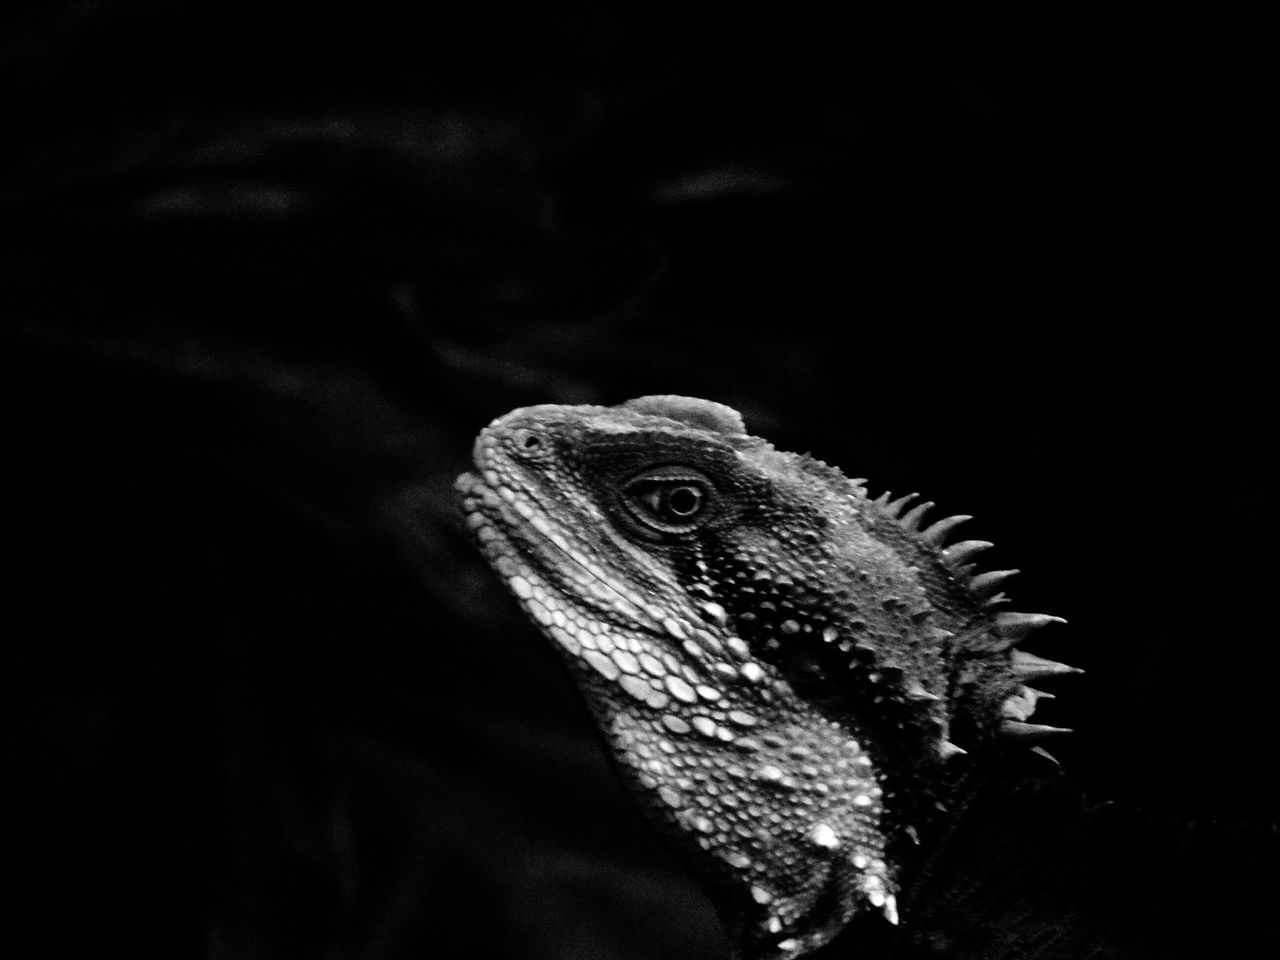 Animal Themes One Animal Animal Wildlife Reptile Animals In The Wild Bearded Dragon Close-up Nature Lizard Iguana No People Outdoors Coldblooded Blackandwhite Photography